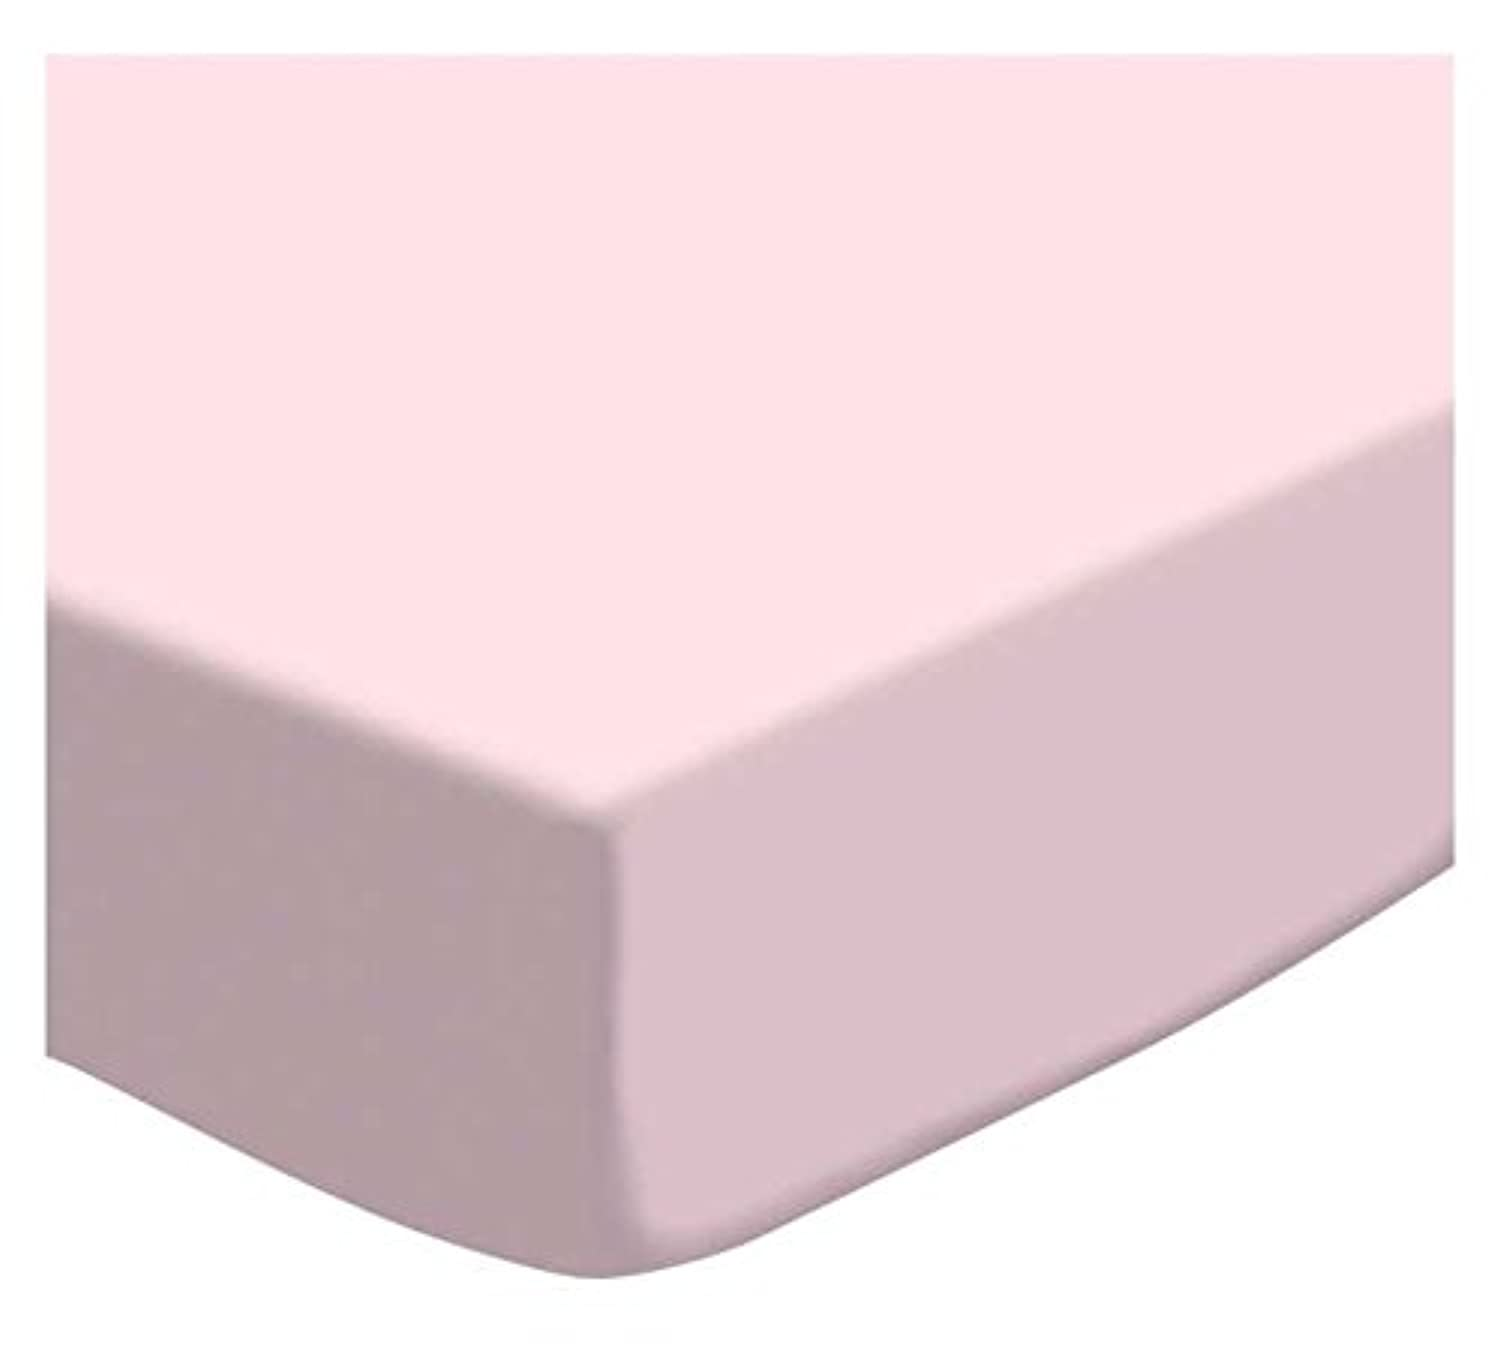 SheetWorld PC-PK PC-PK Fitted Portable / Mini Crib Sheet - Baby Pink Jersey Knit - Made In USA by sheetworld